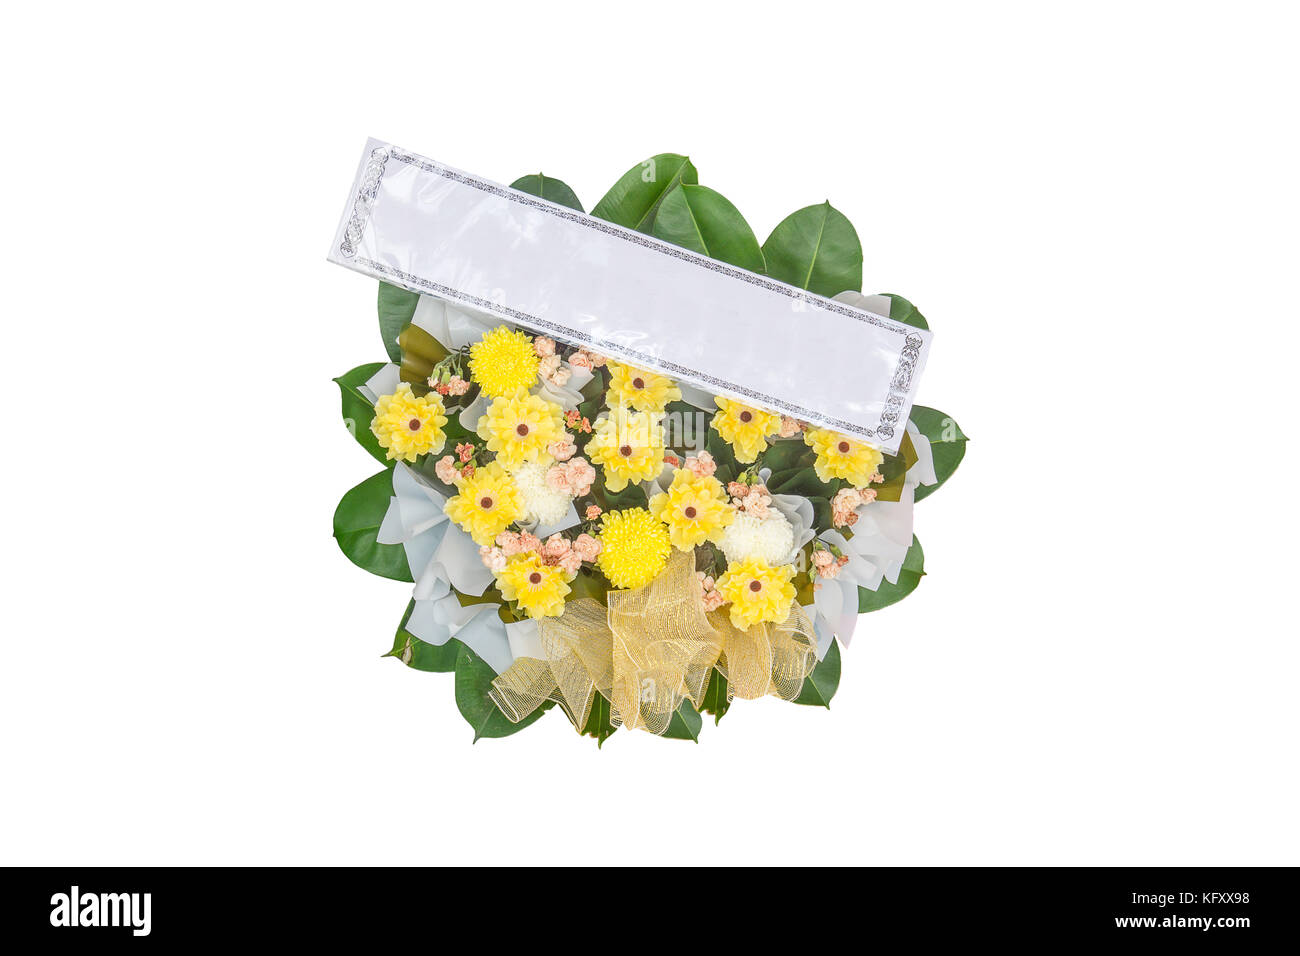 Yellow Flower Bouquet In Round Design With Name Tag Stock Photo